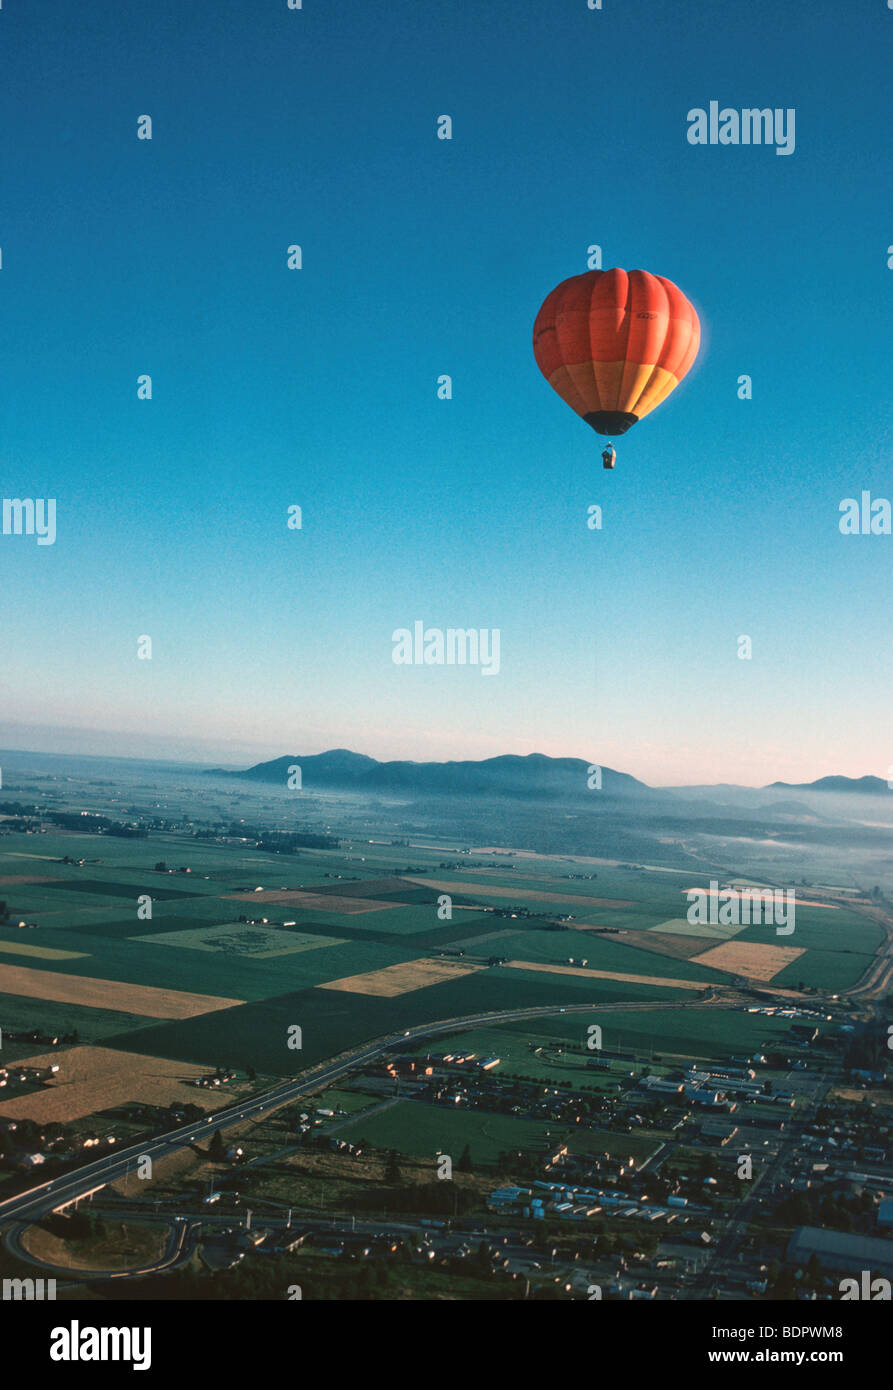 Hot air baloon over Skagit valley at sunrise - Stock Image